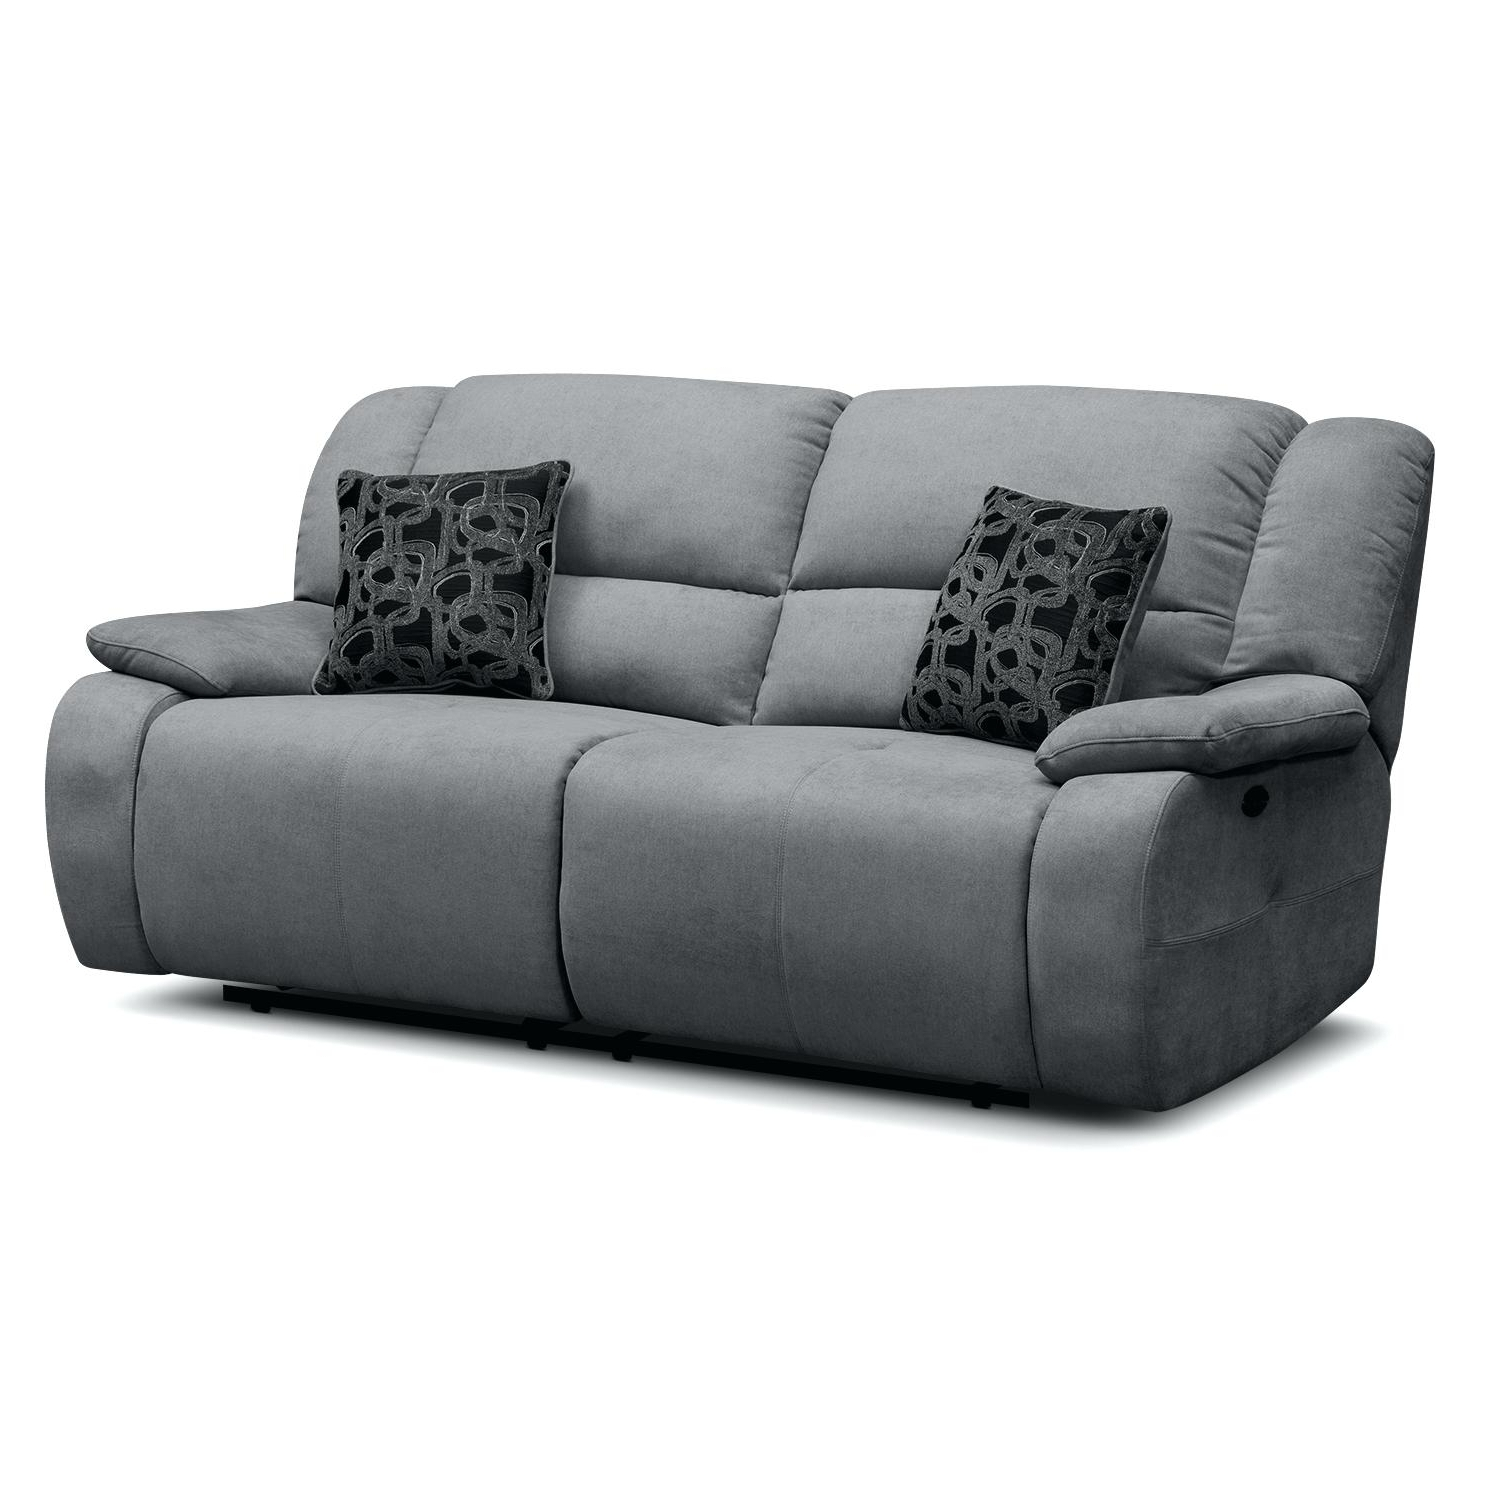 Unusual Sofa Throughout Best And Newest Unusual Sofas Uk (View 6 of 20)